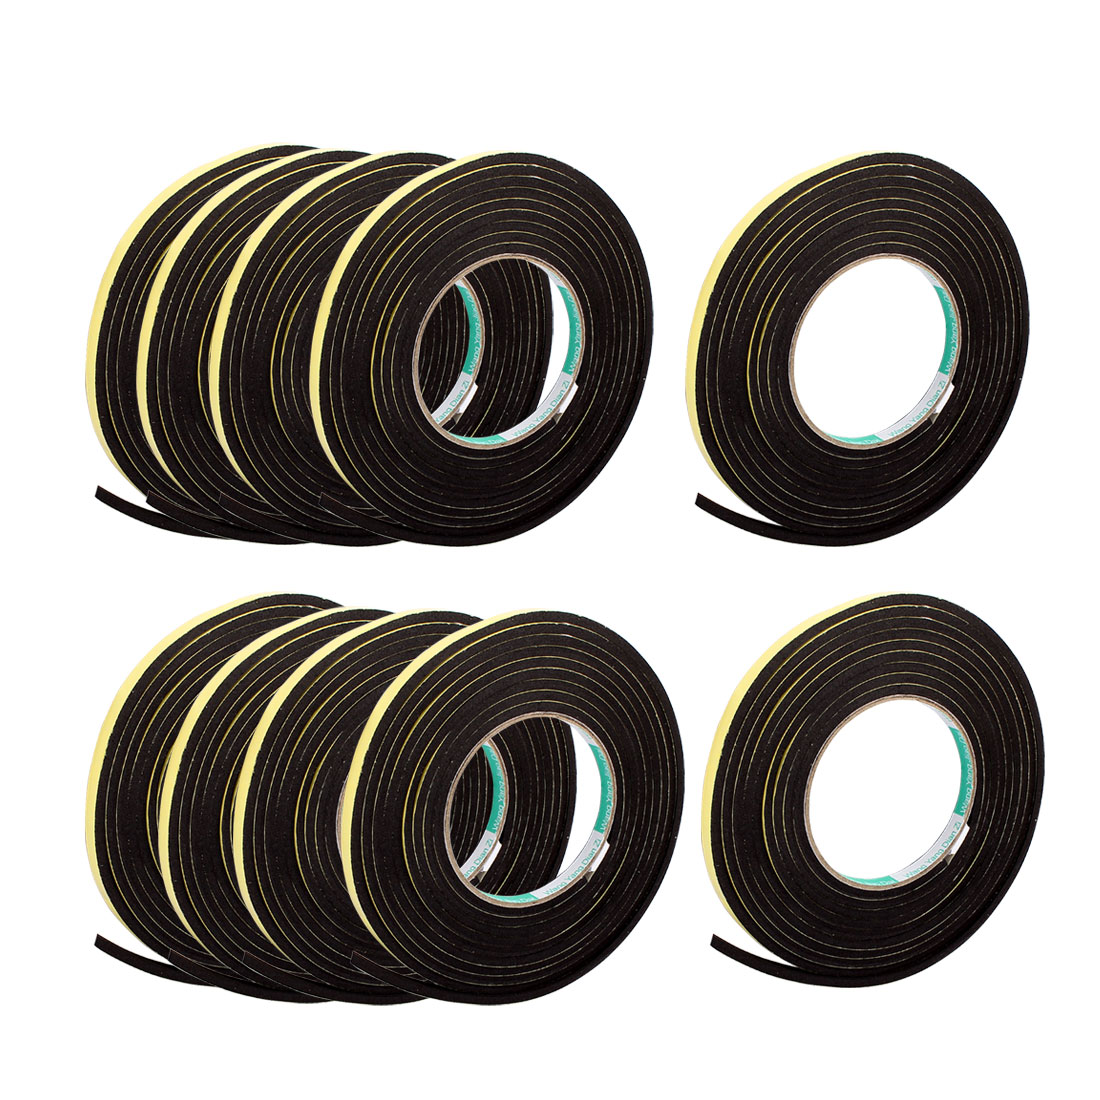 10 Pcs 0.8CM Width 9.8ft Length 4MM Thick Single Sided Sealing Shockproof Sponge Tape